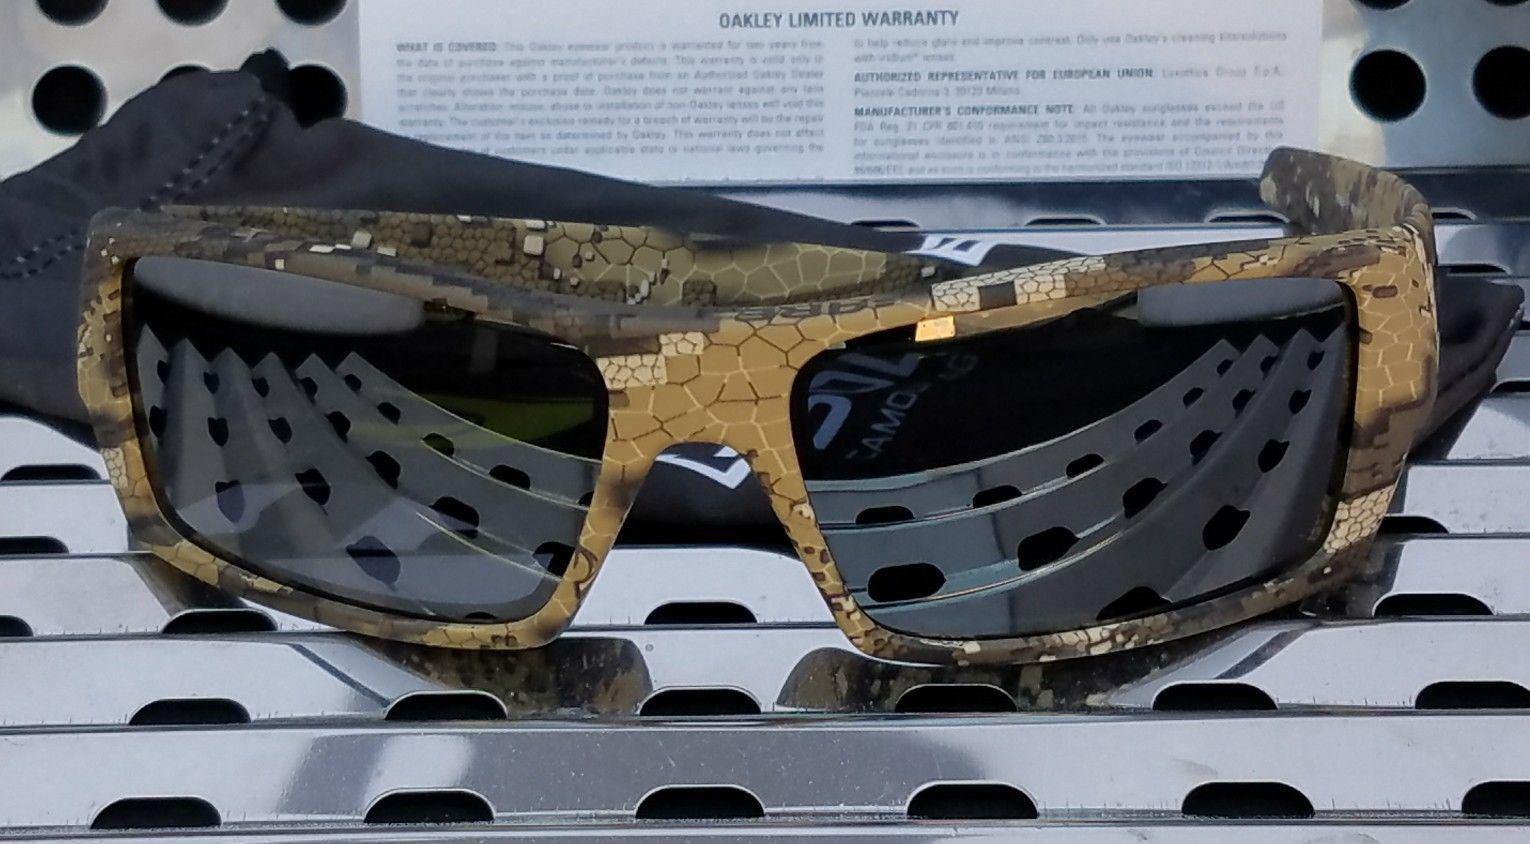 47f051b0dc ... wholesale new oakley gascan sunglasses std. issue 9014 12 desolve camo  w black iridium 869be